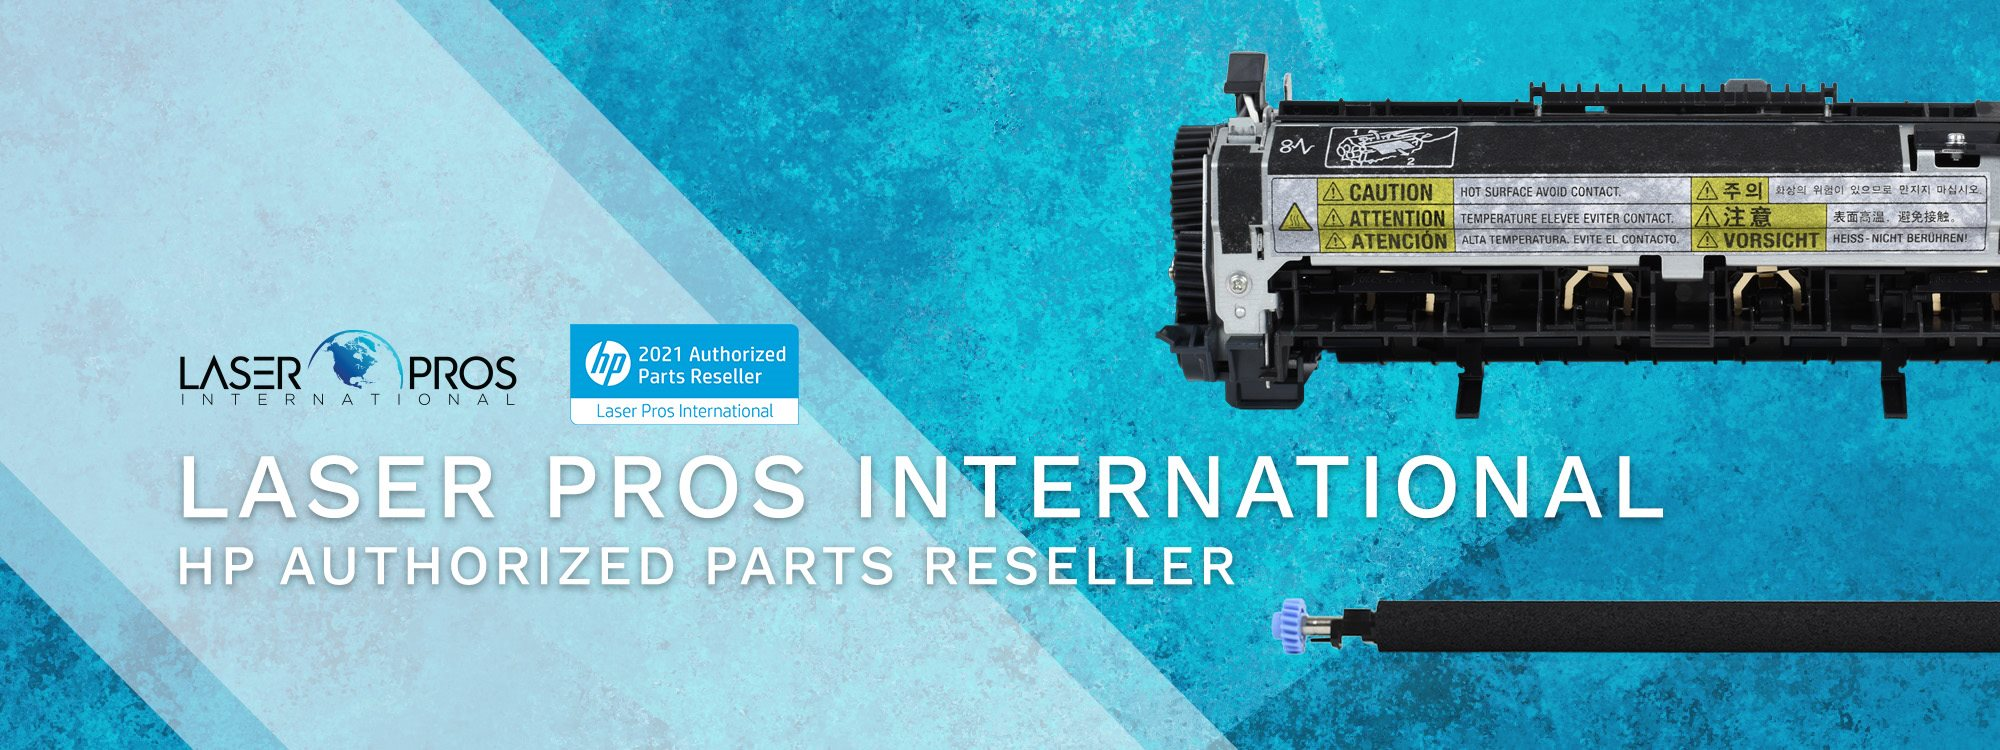 Laser Pros International HP Authorized Parts Reseller